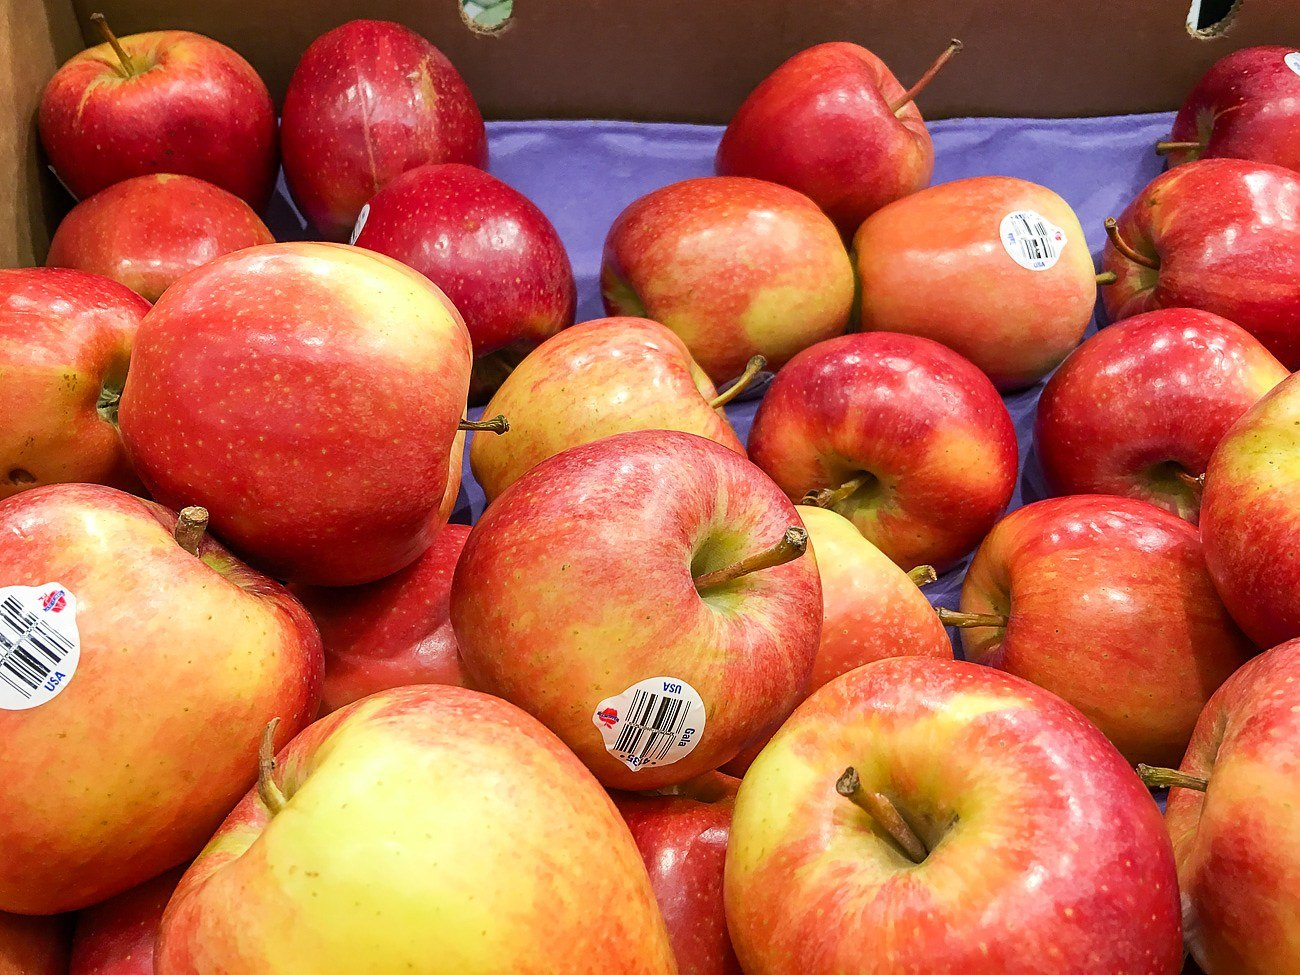 Fresh apples at Aldi grocery store in Vista